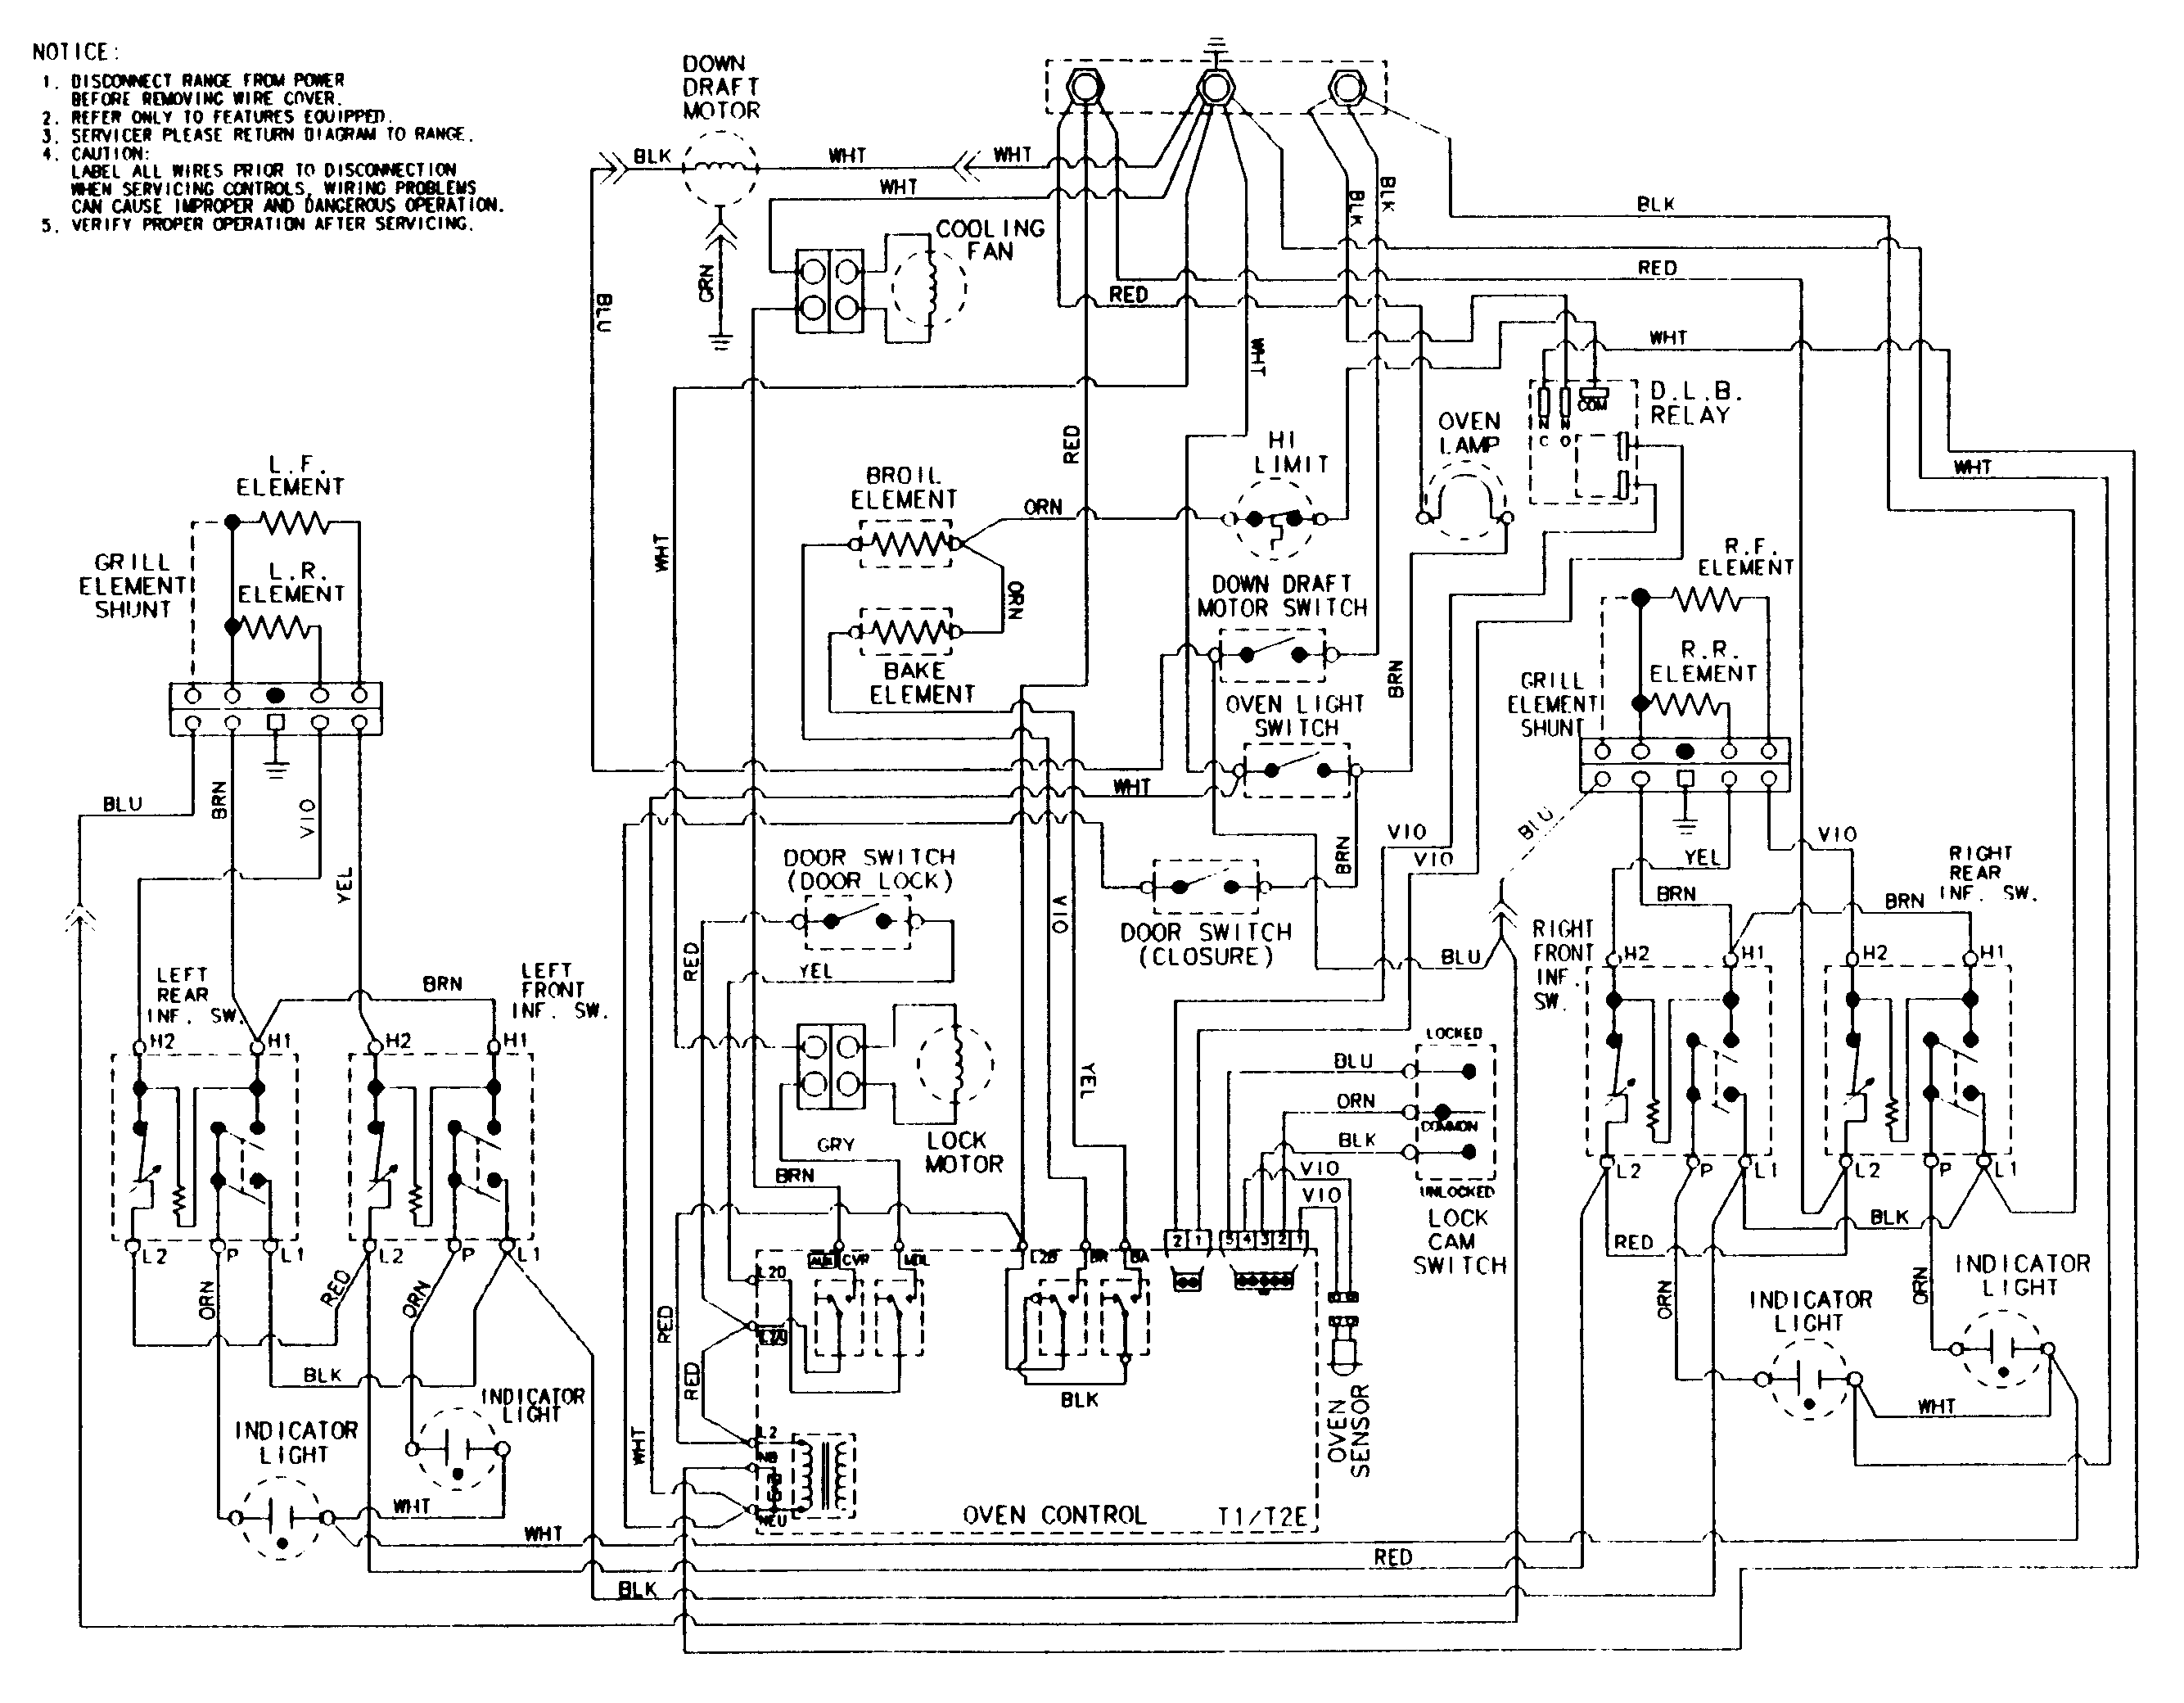 wiring information sve47100bc wc ser 14 parts maytag sve47100 electric slide in range timer stove clocks and Basic Electrical Wiring Diagrams at eliteediting.co